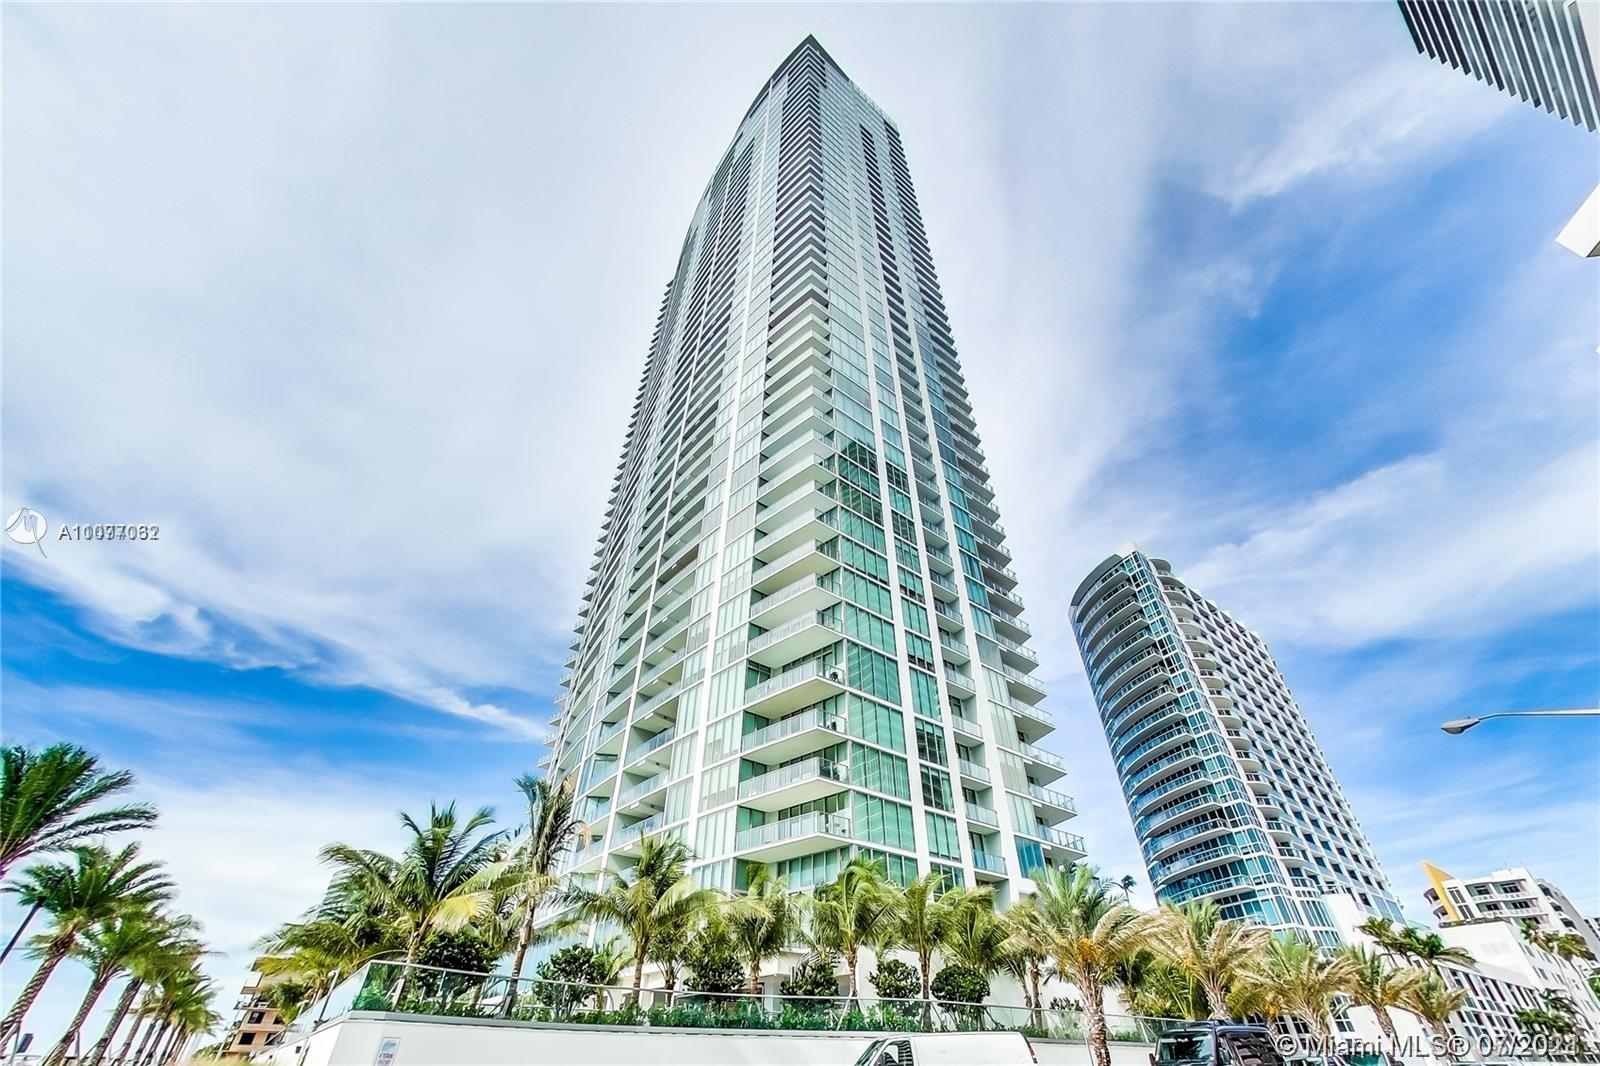 This tropical oasis in the sky boasts panoramic views of the Atlantic Ocean and Biscayne Bay. Luxury